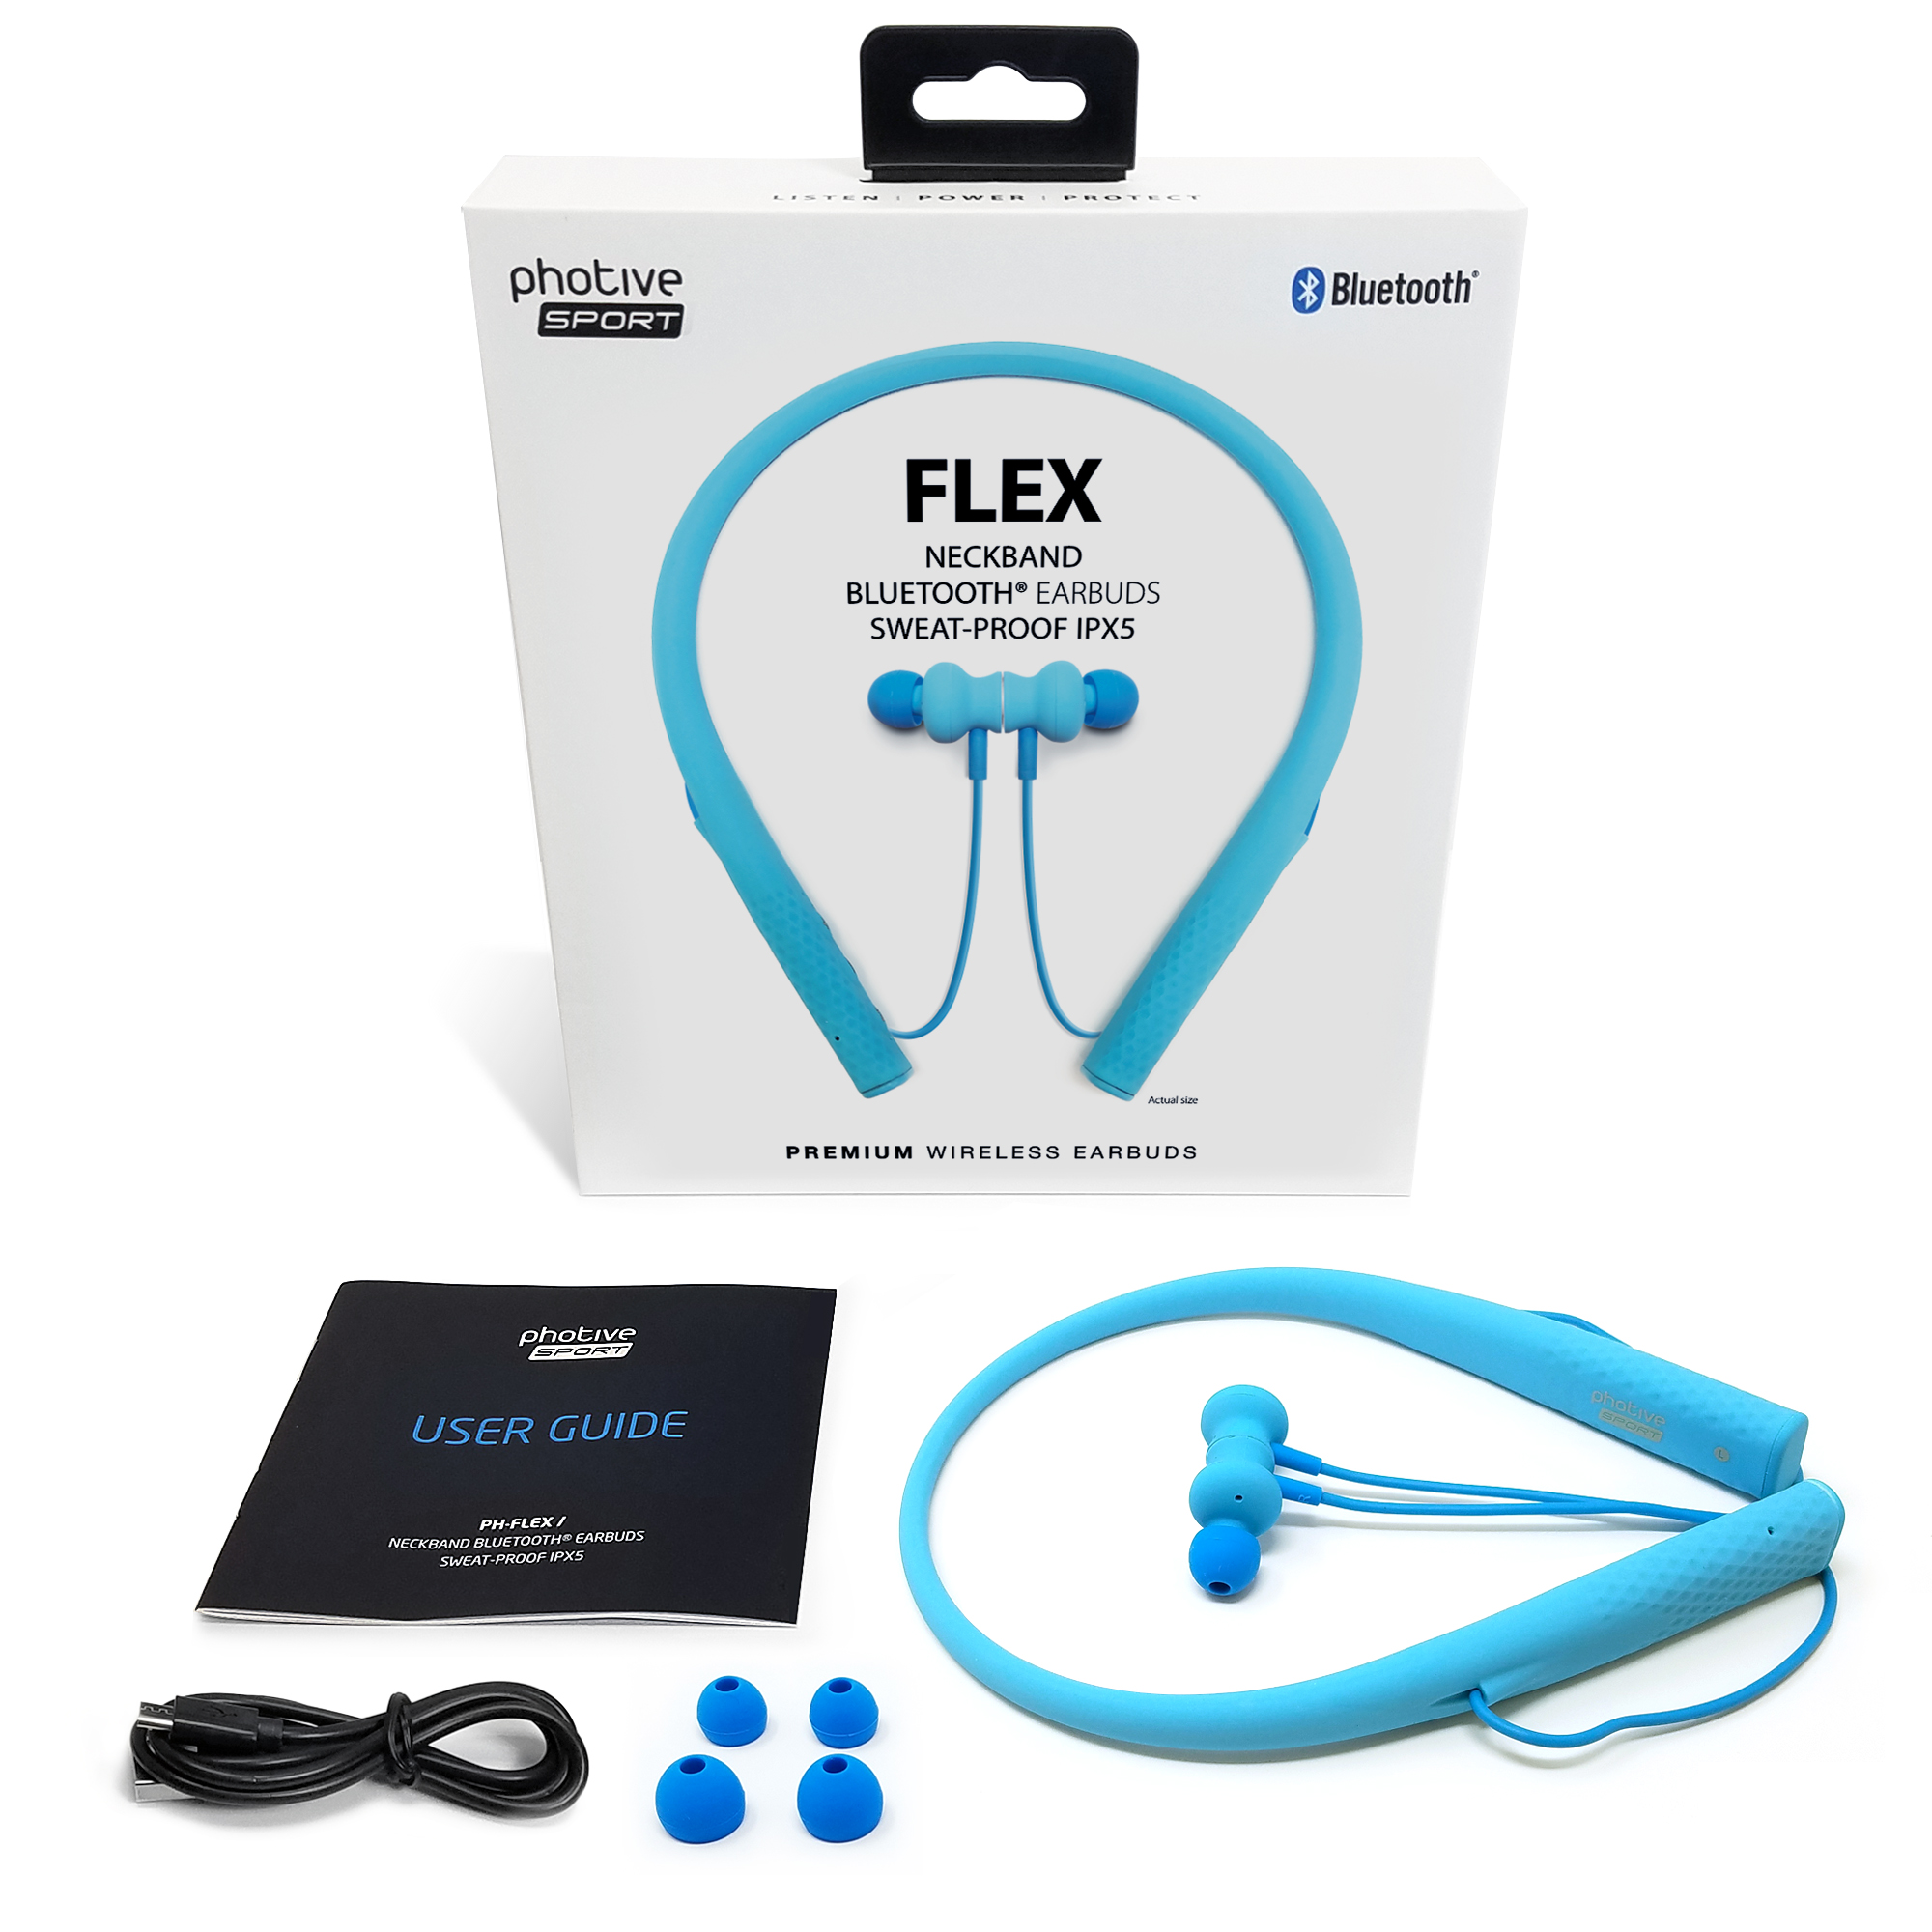 4022110bbd4 Photive Flex Wireless Bluetooth Stereo Neckband Headphones with Magnetic  In-Ear Earbuds. Comfortable Lightweight Silicone thats Sweatproof and  Secure-Fit ...